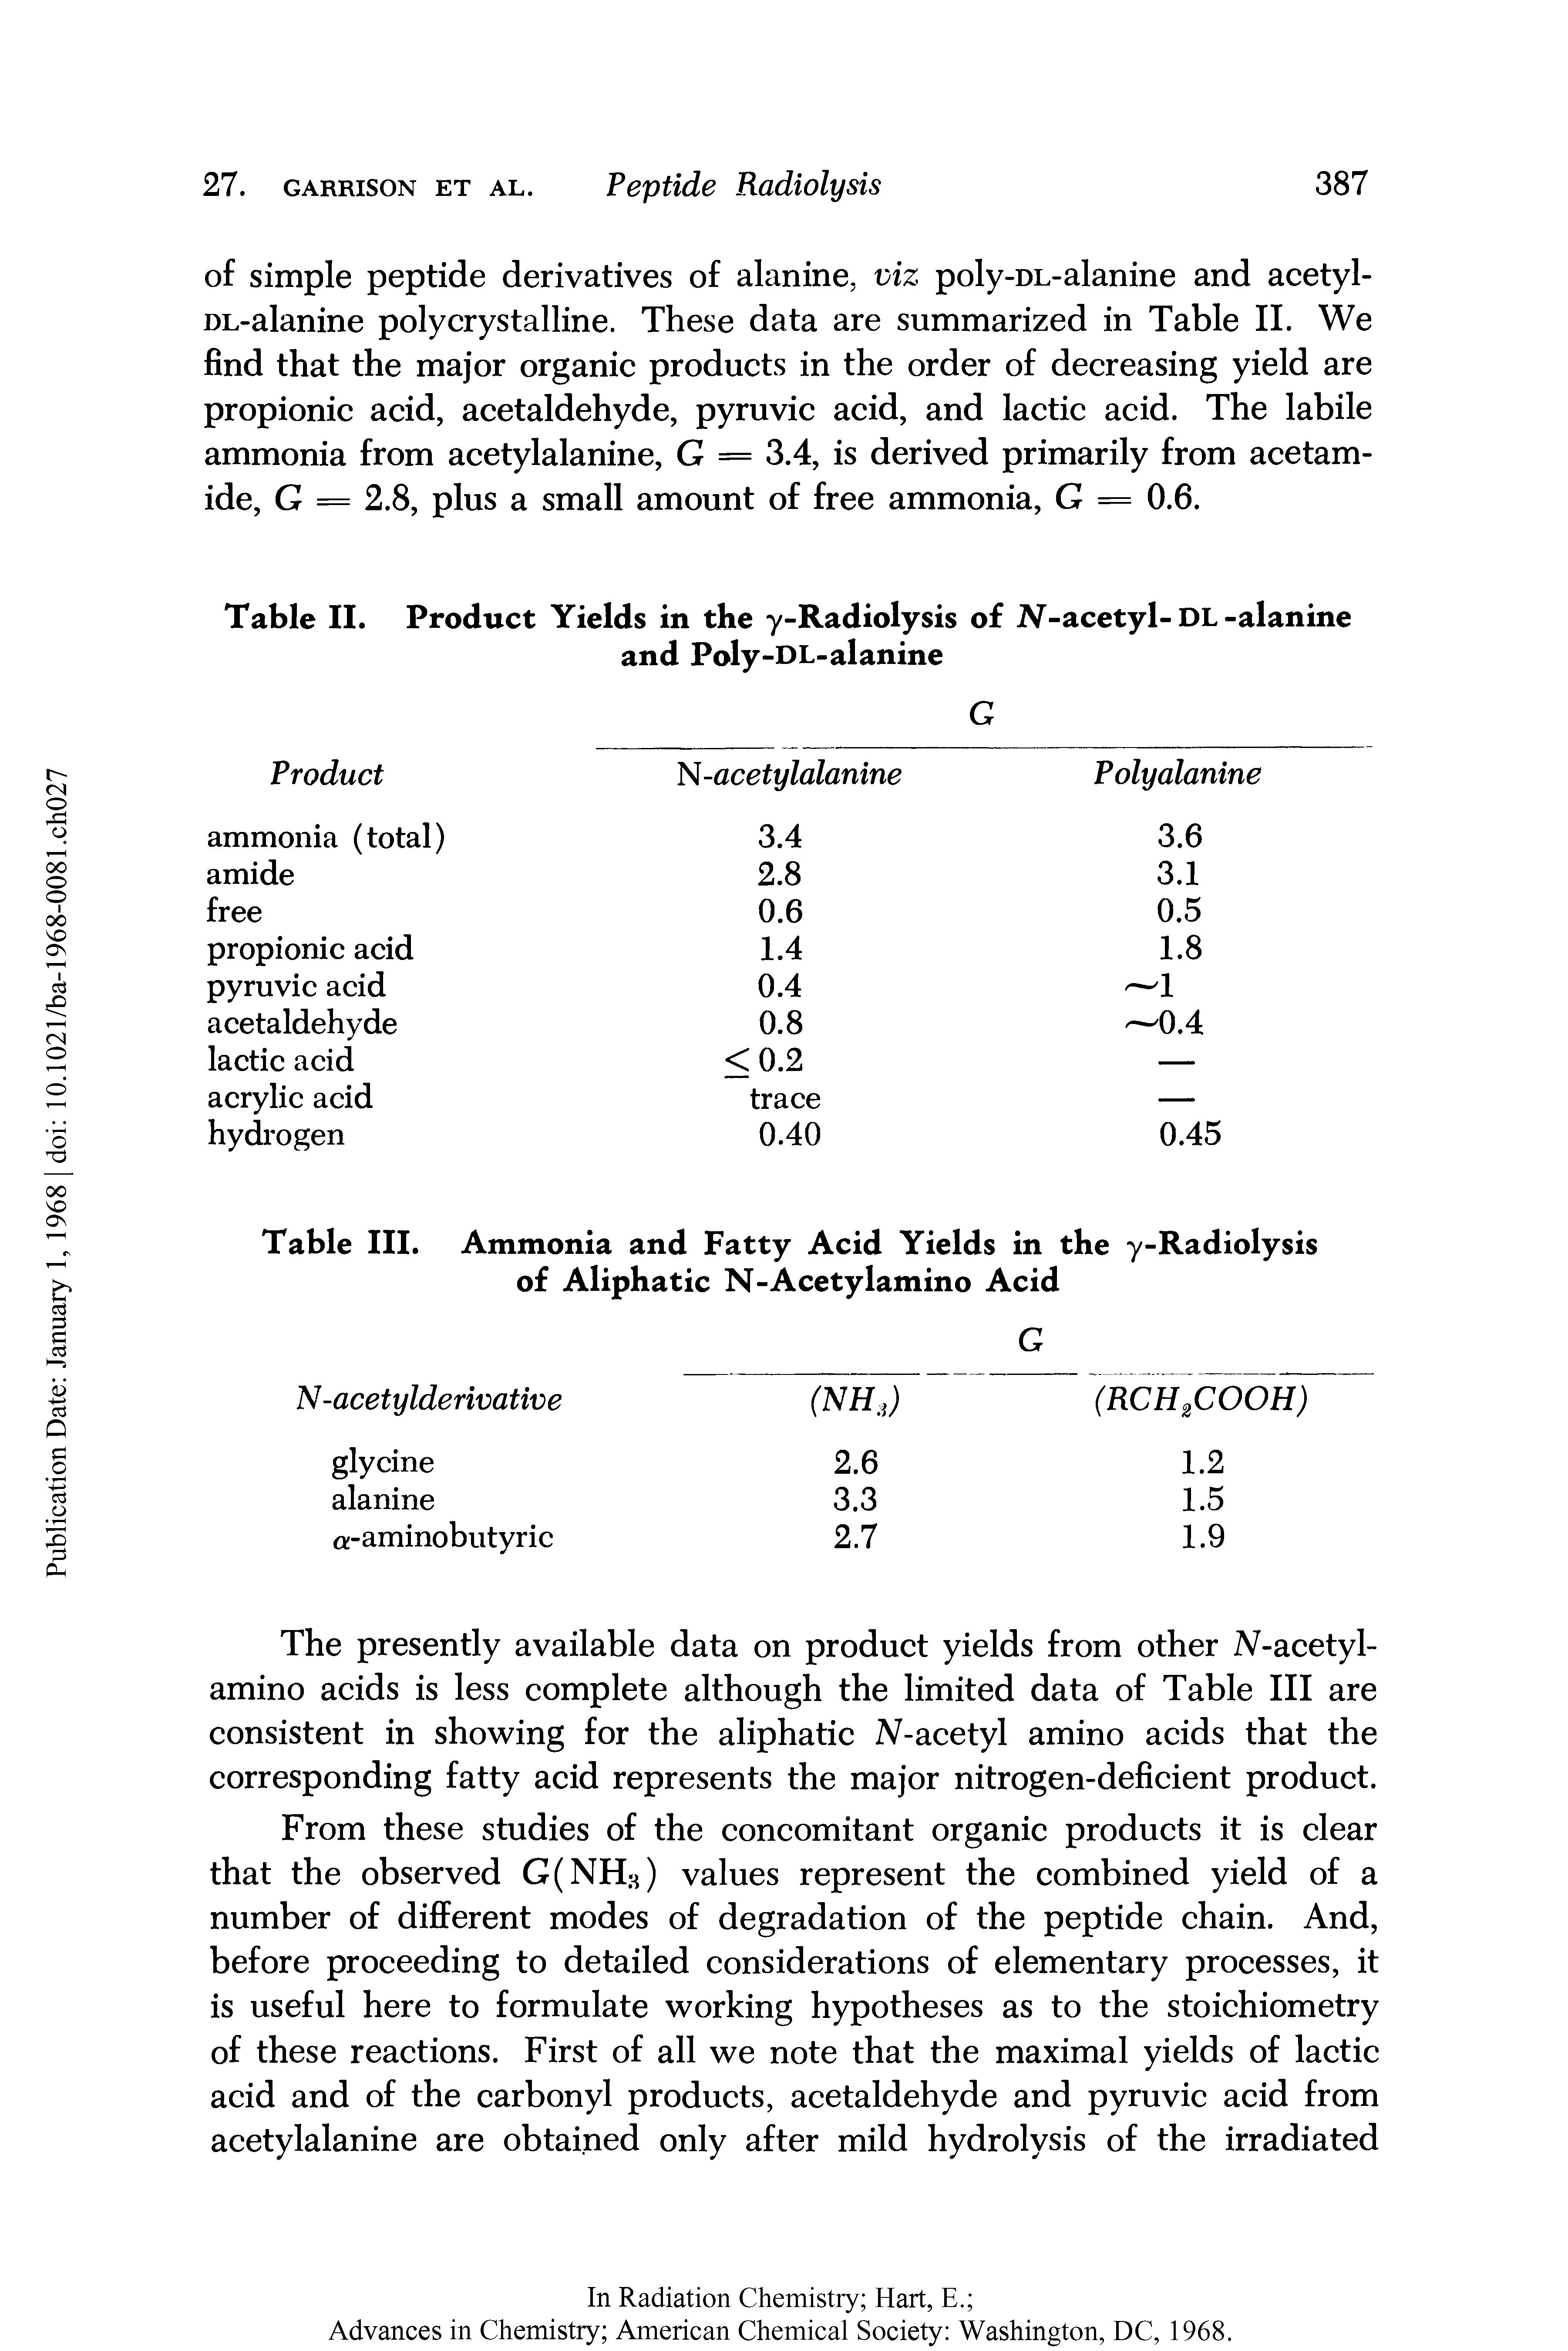 Table II. Product Yields in the y-Radiolysis of 2V-acetyl-DL-alanine...